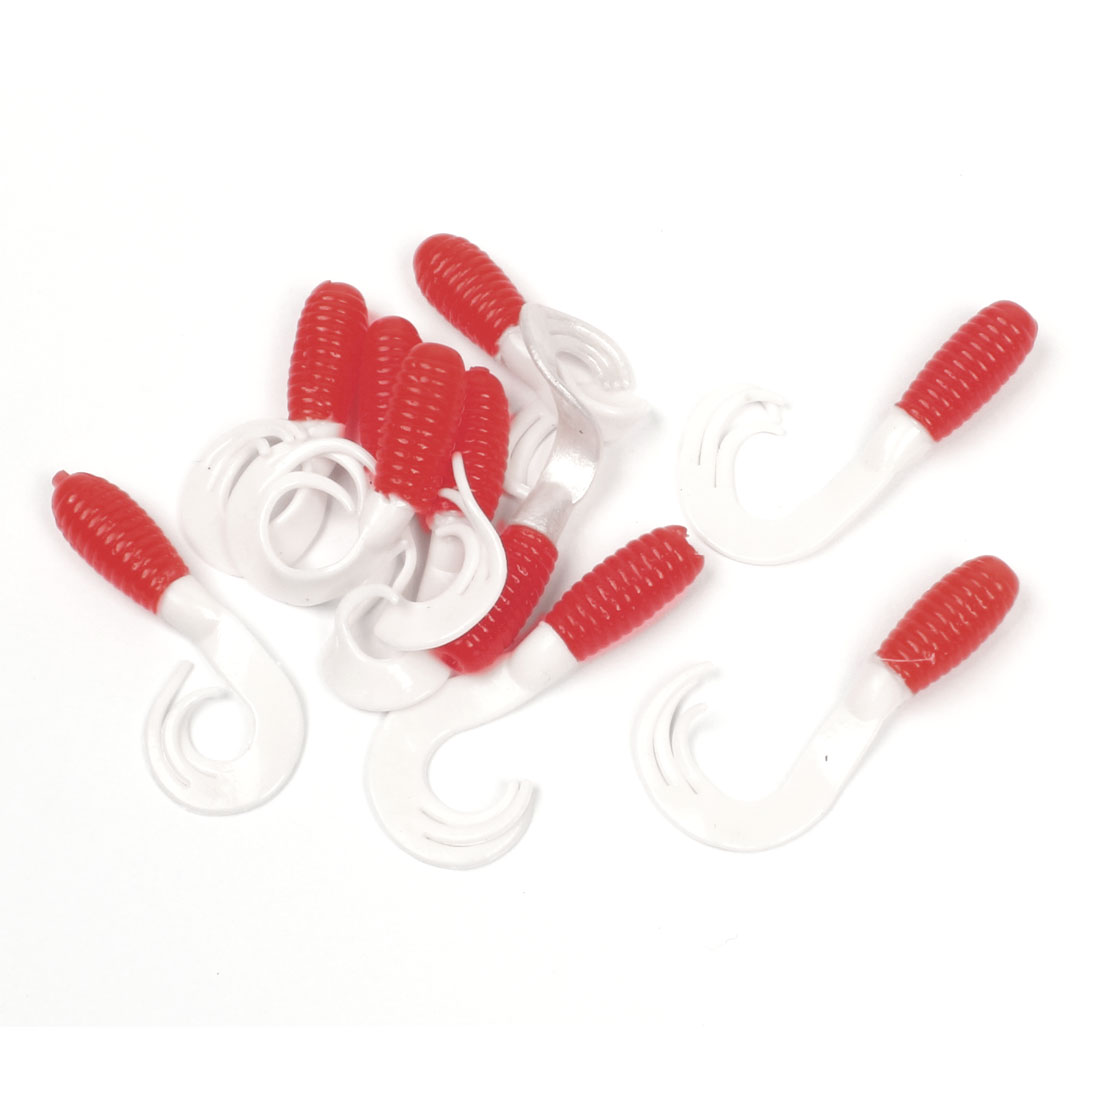 White Watermelon Red Soft Silicone Worm Design Baits 10pcs for fishing